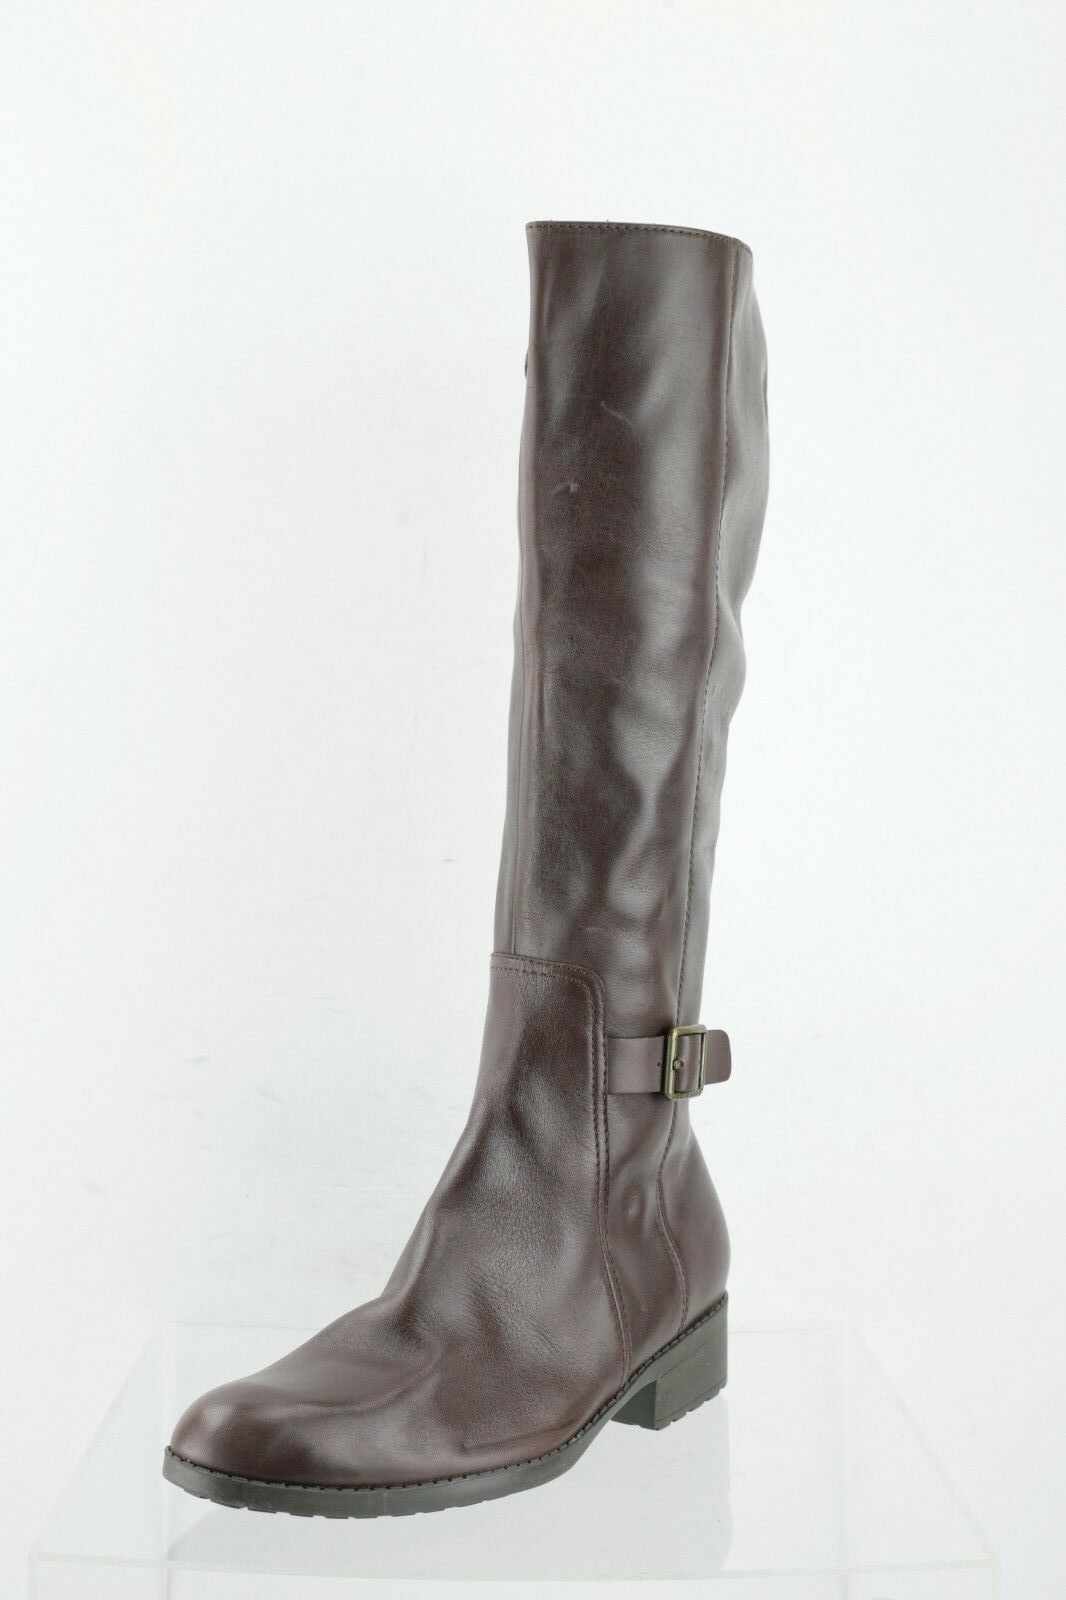 Cole Haan Huntley Chestnut Leather Waterproof Boots Women's Shoes Size 9.5 M NEW